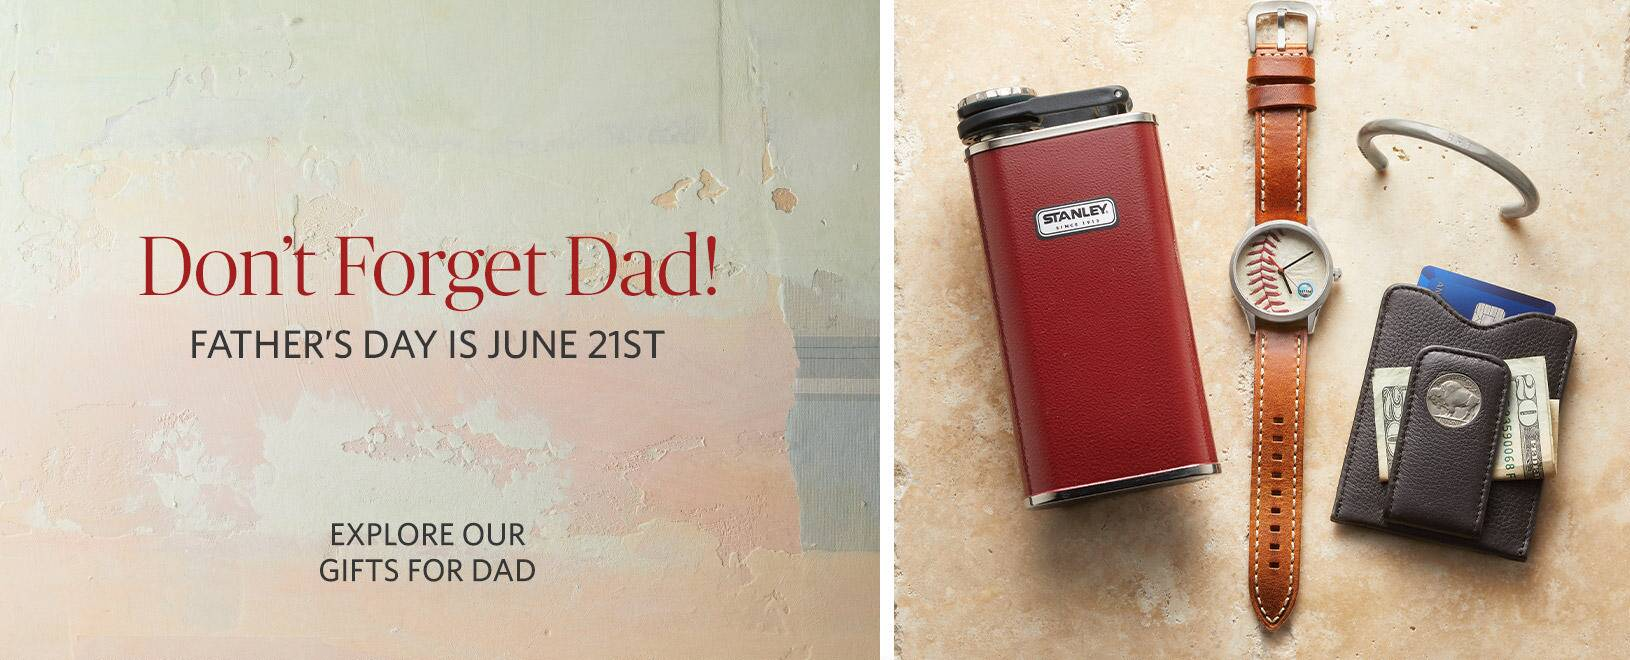 Don't forget Dad!